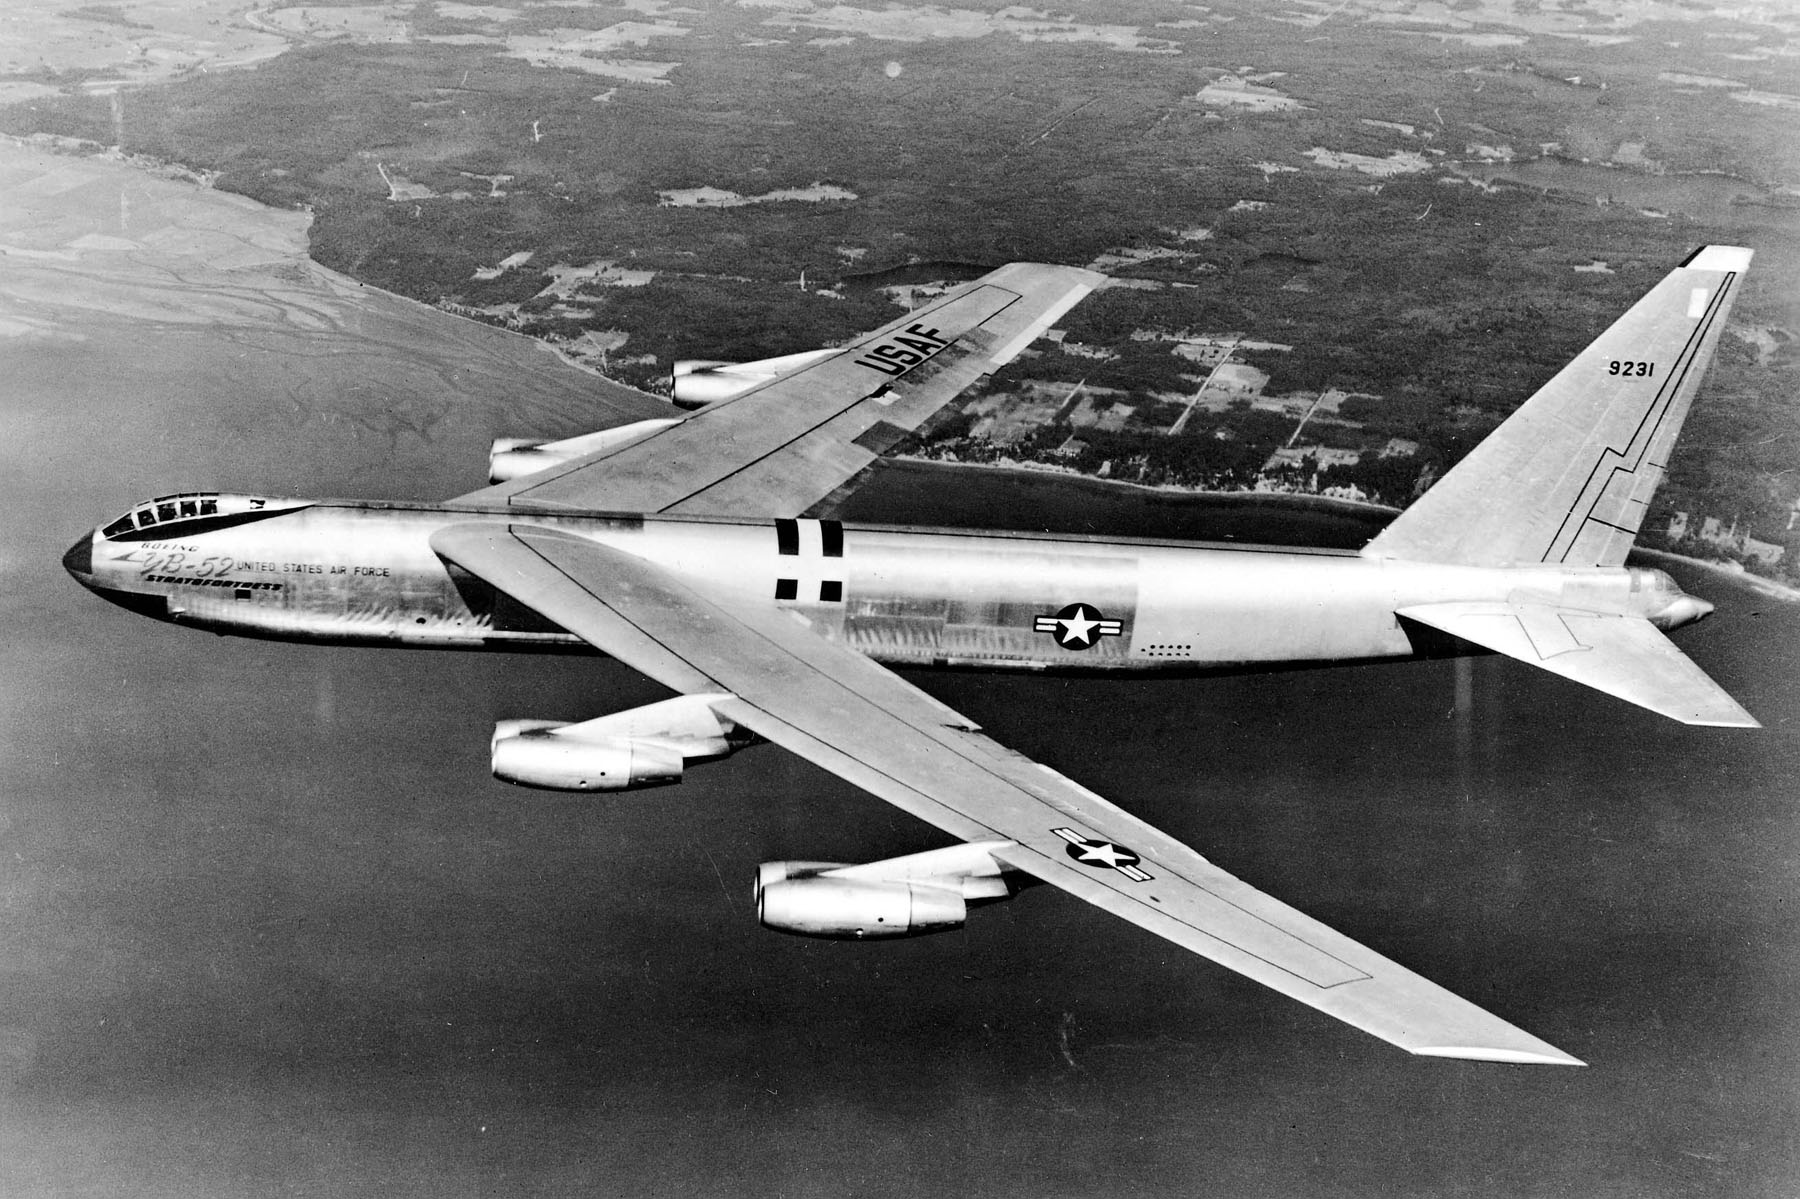 The B-52 Bomber: The Air Forceu0026#39;s Workhorse - History